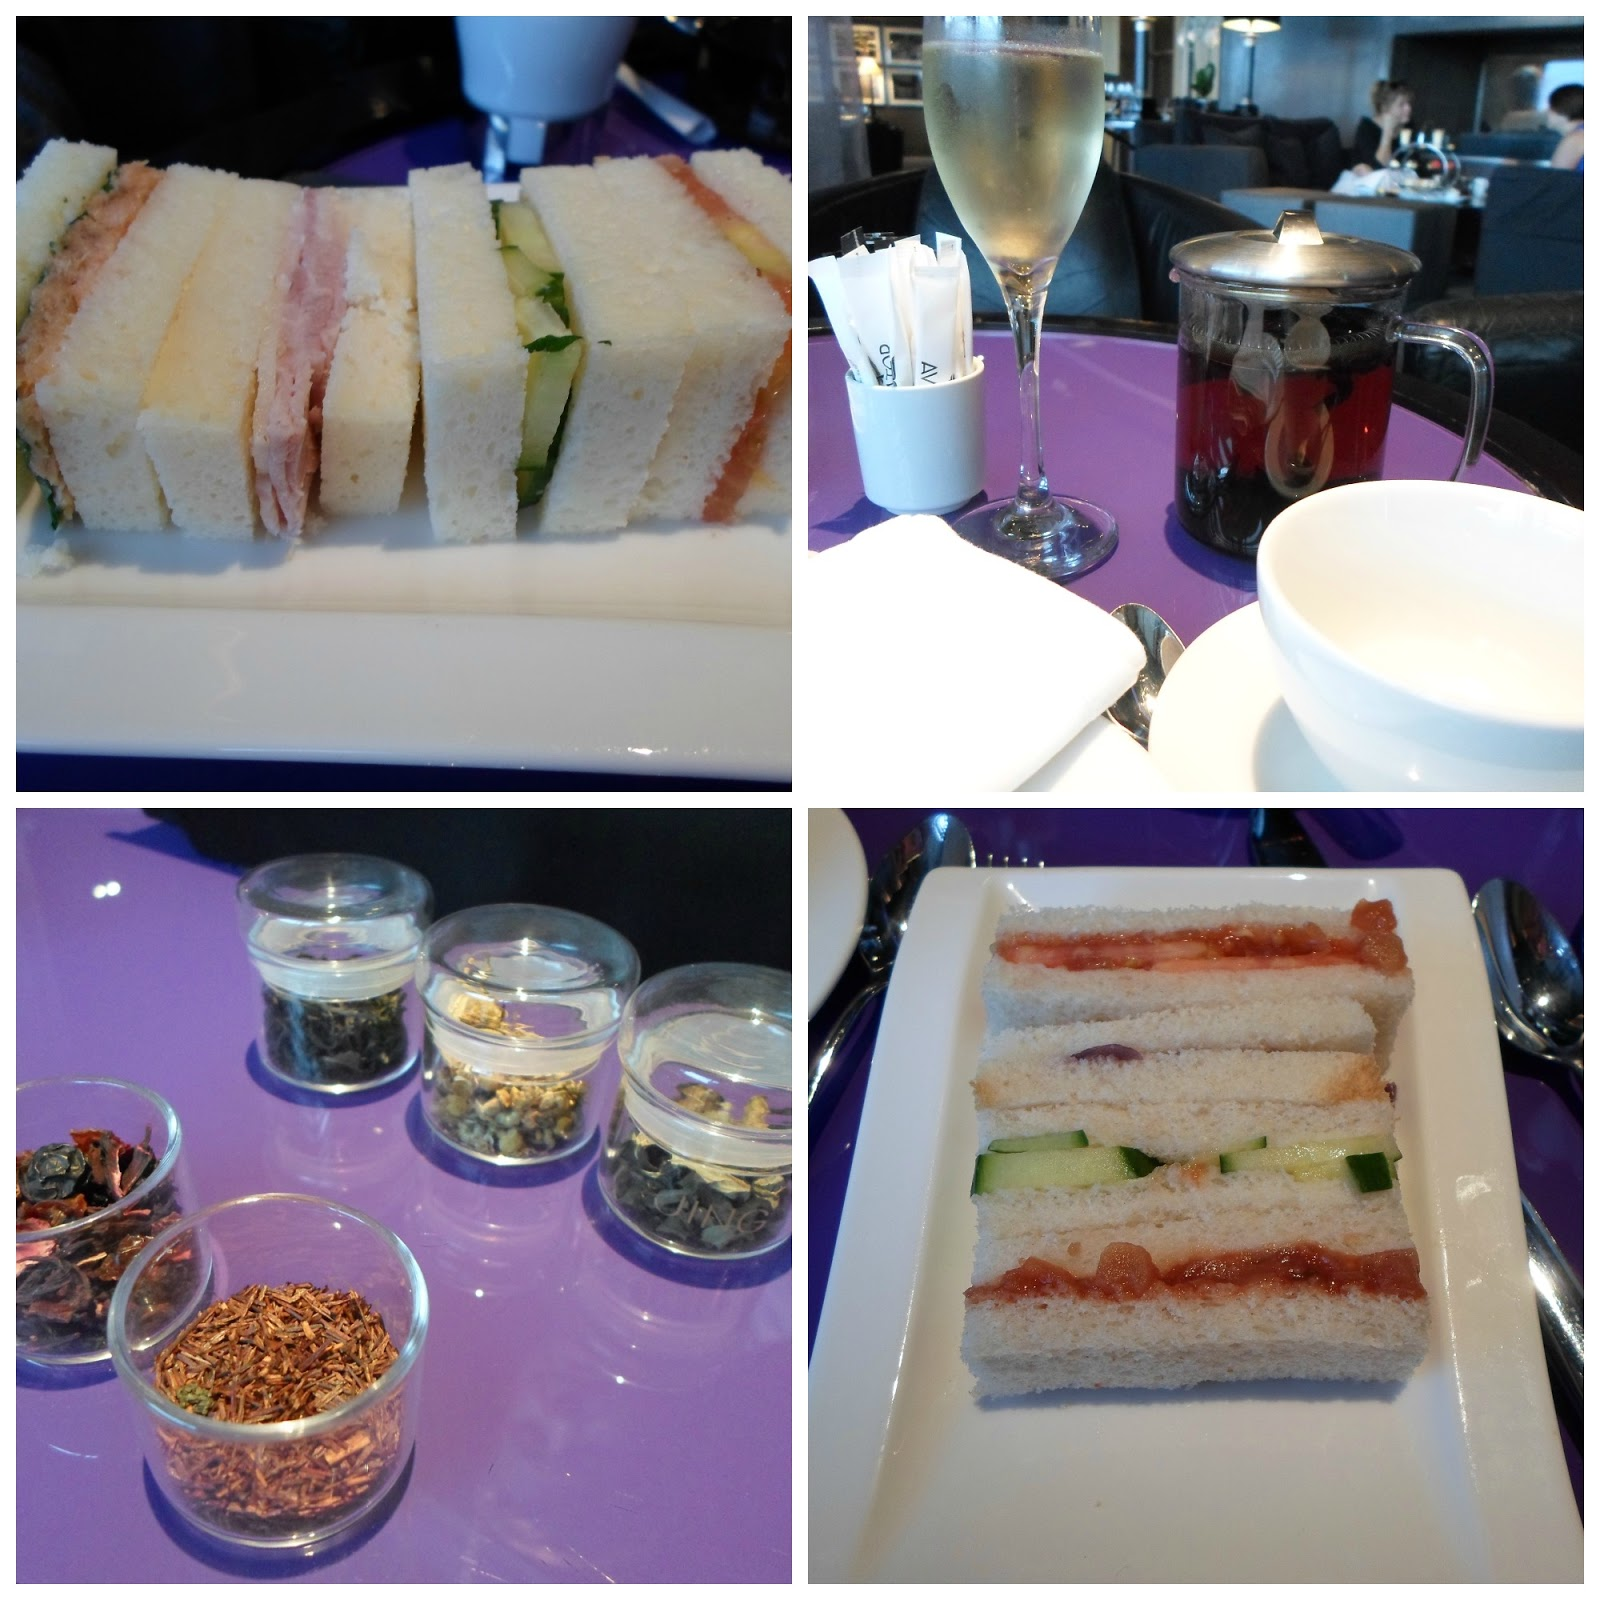 Afternoon Tea: Vegan and Gluten Free at The Aviator Hotel in Farnborough